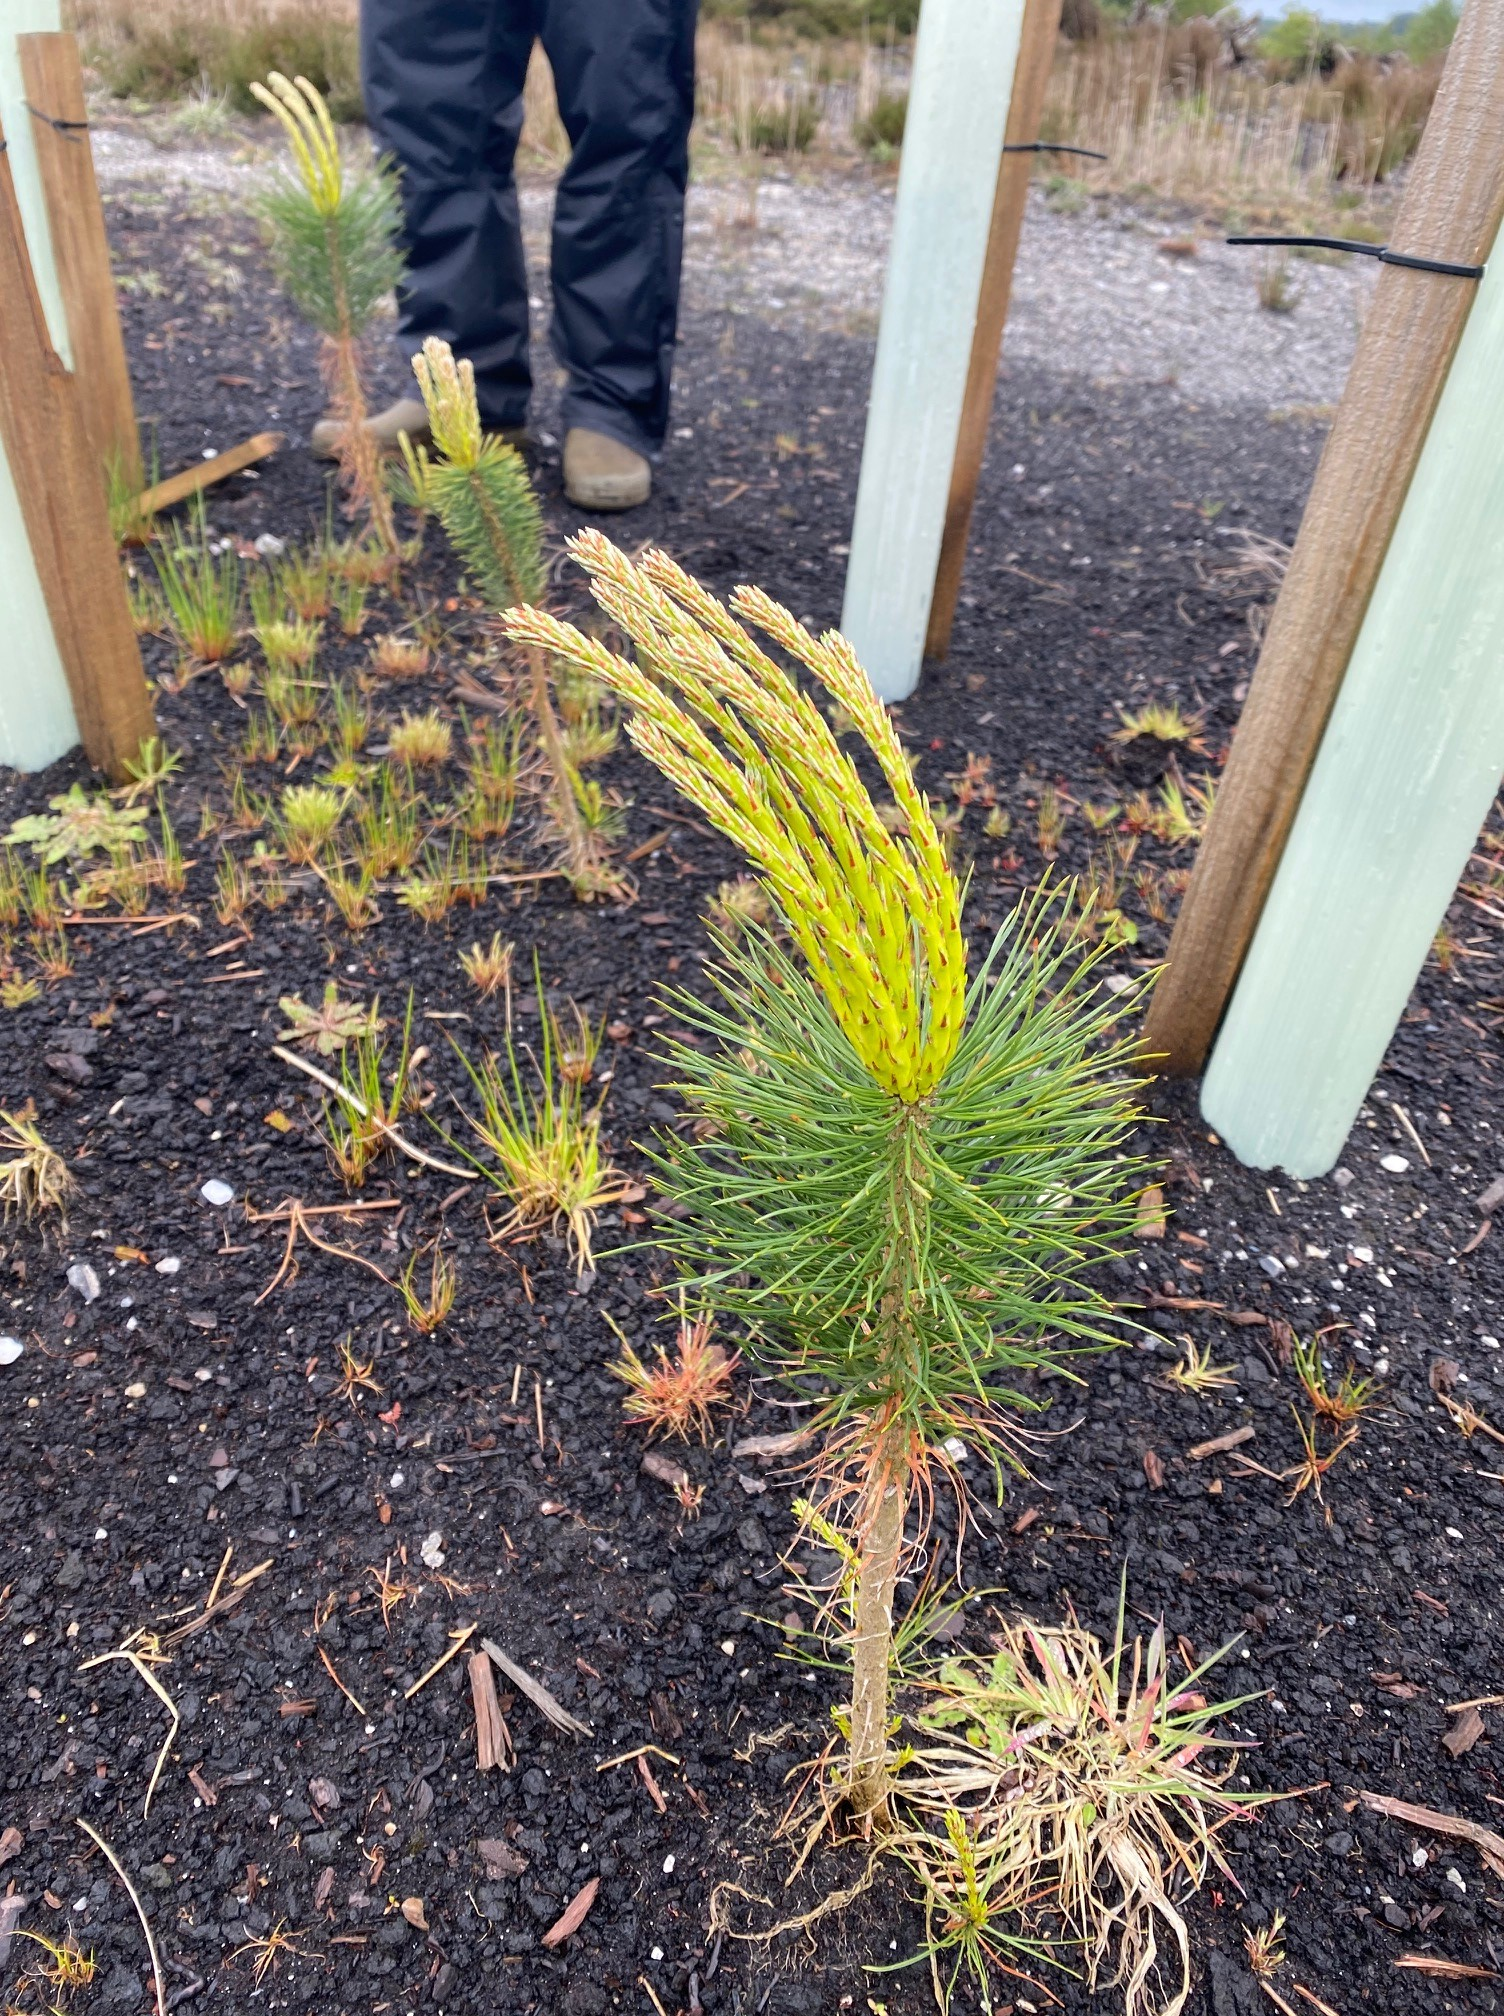 Scots pine planted bare root 2020